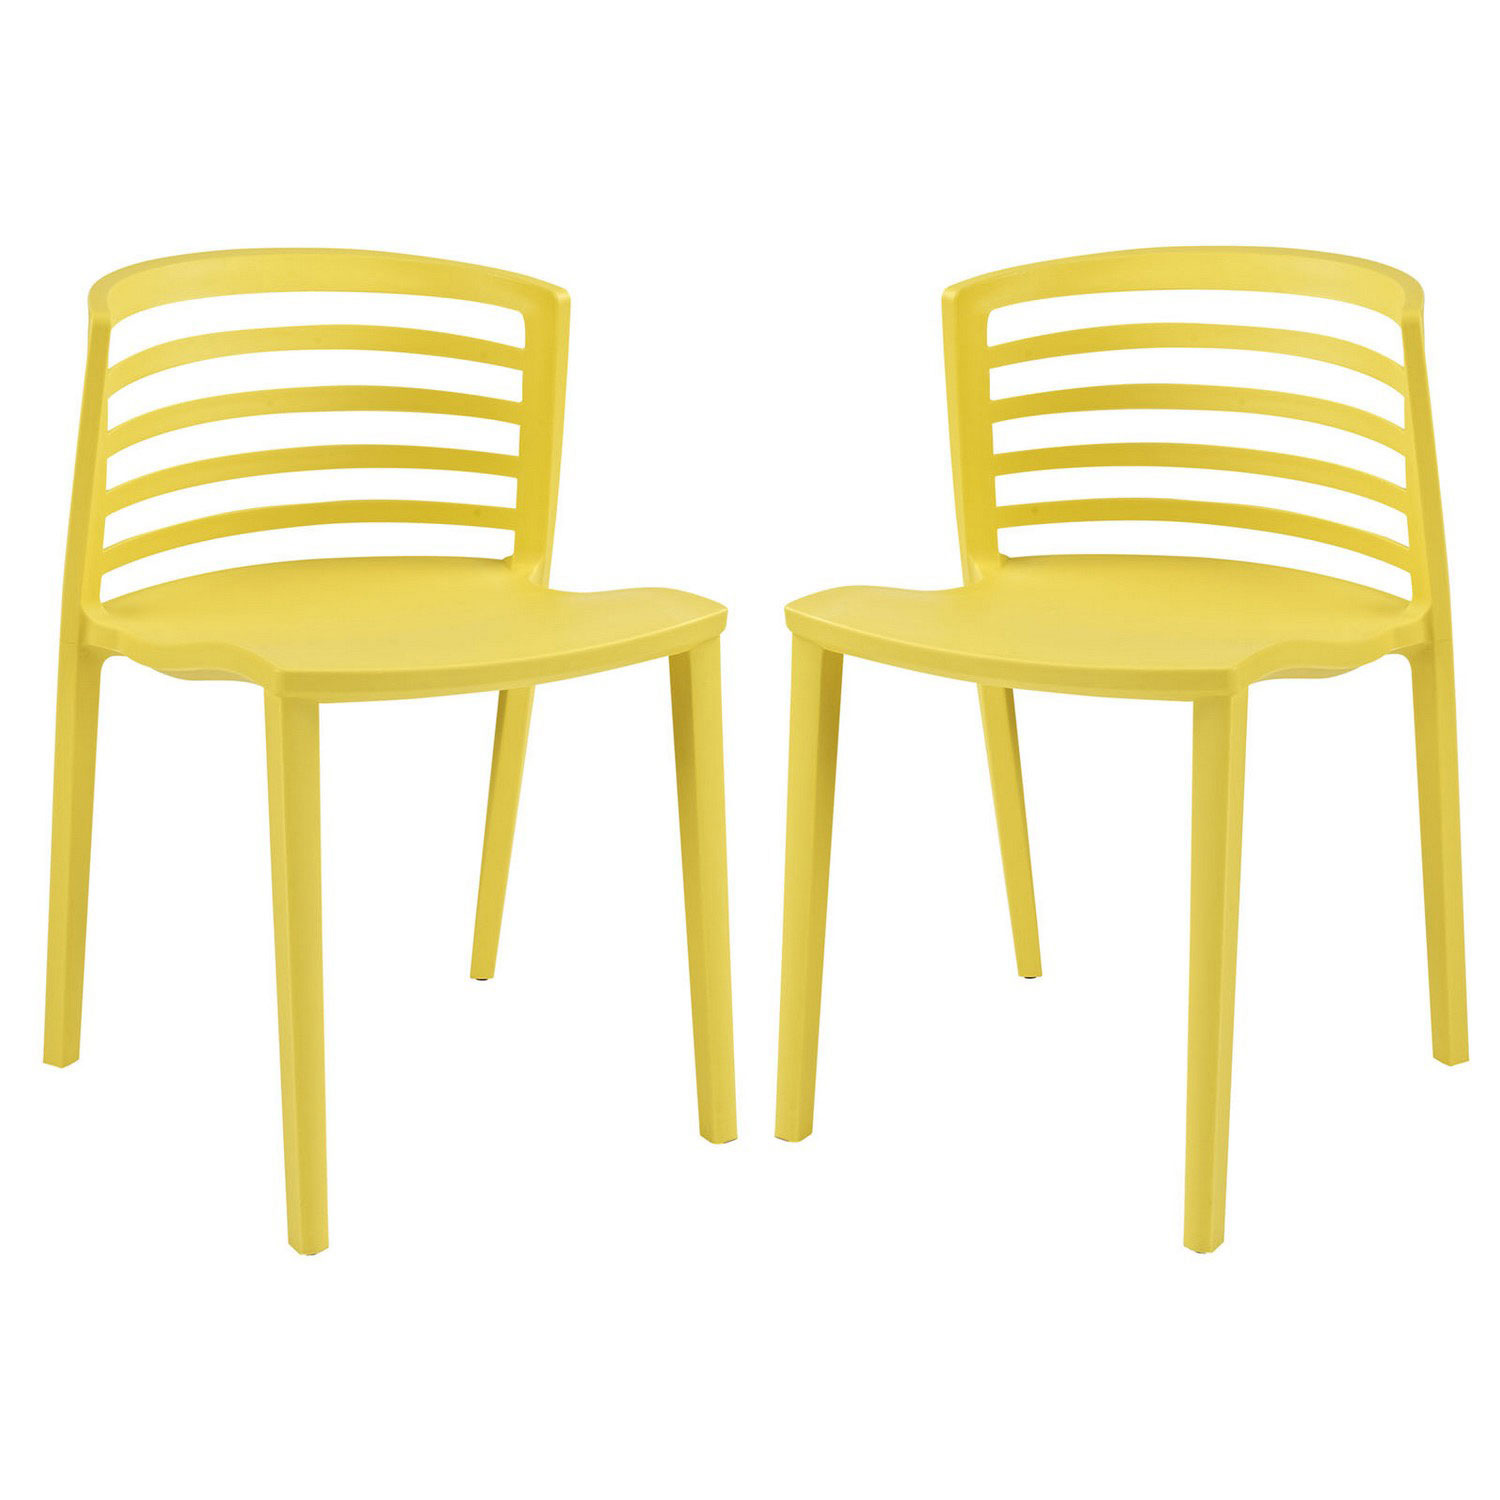 Modway Curvy Dining Chairs Set of 2 - Yellow